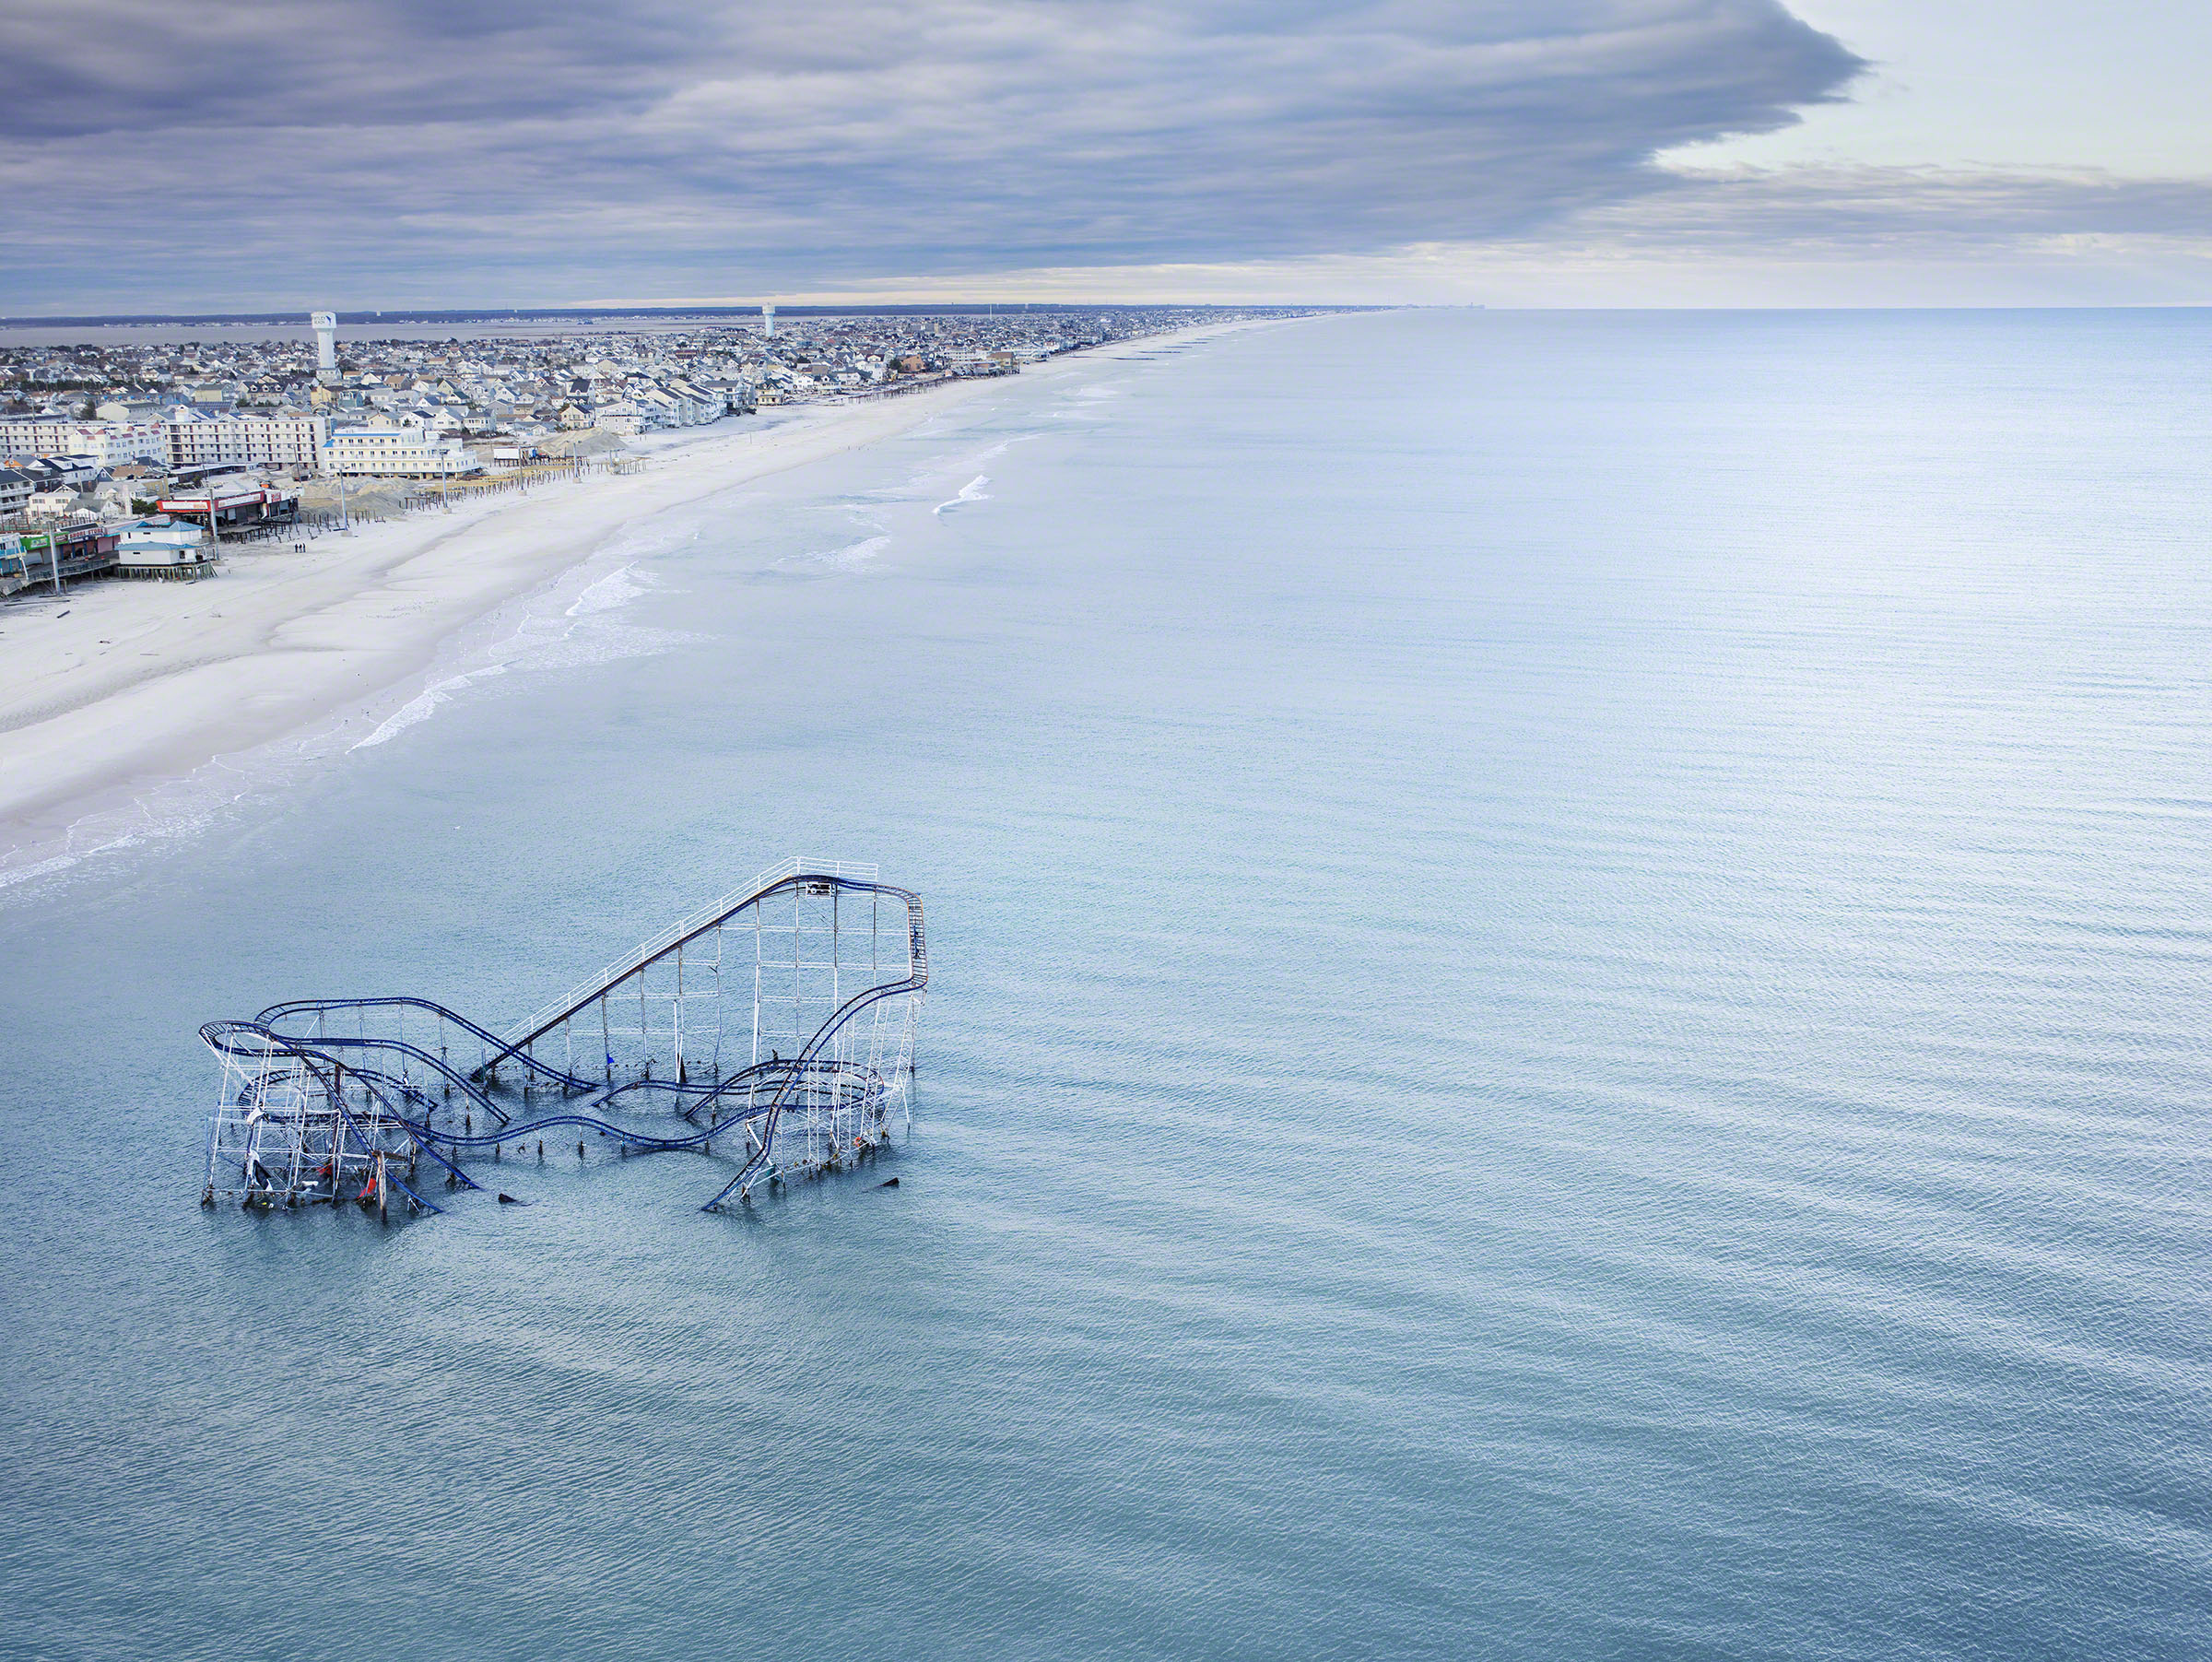 The roller coaster from the boardwalk in Seaside Heights, New Jersey partially submerged in theocean after Hurricane Sandy. © Stephen Wilkes courtesy of Peter Fetterman Gallery.